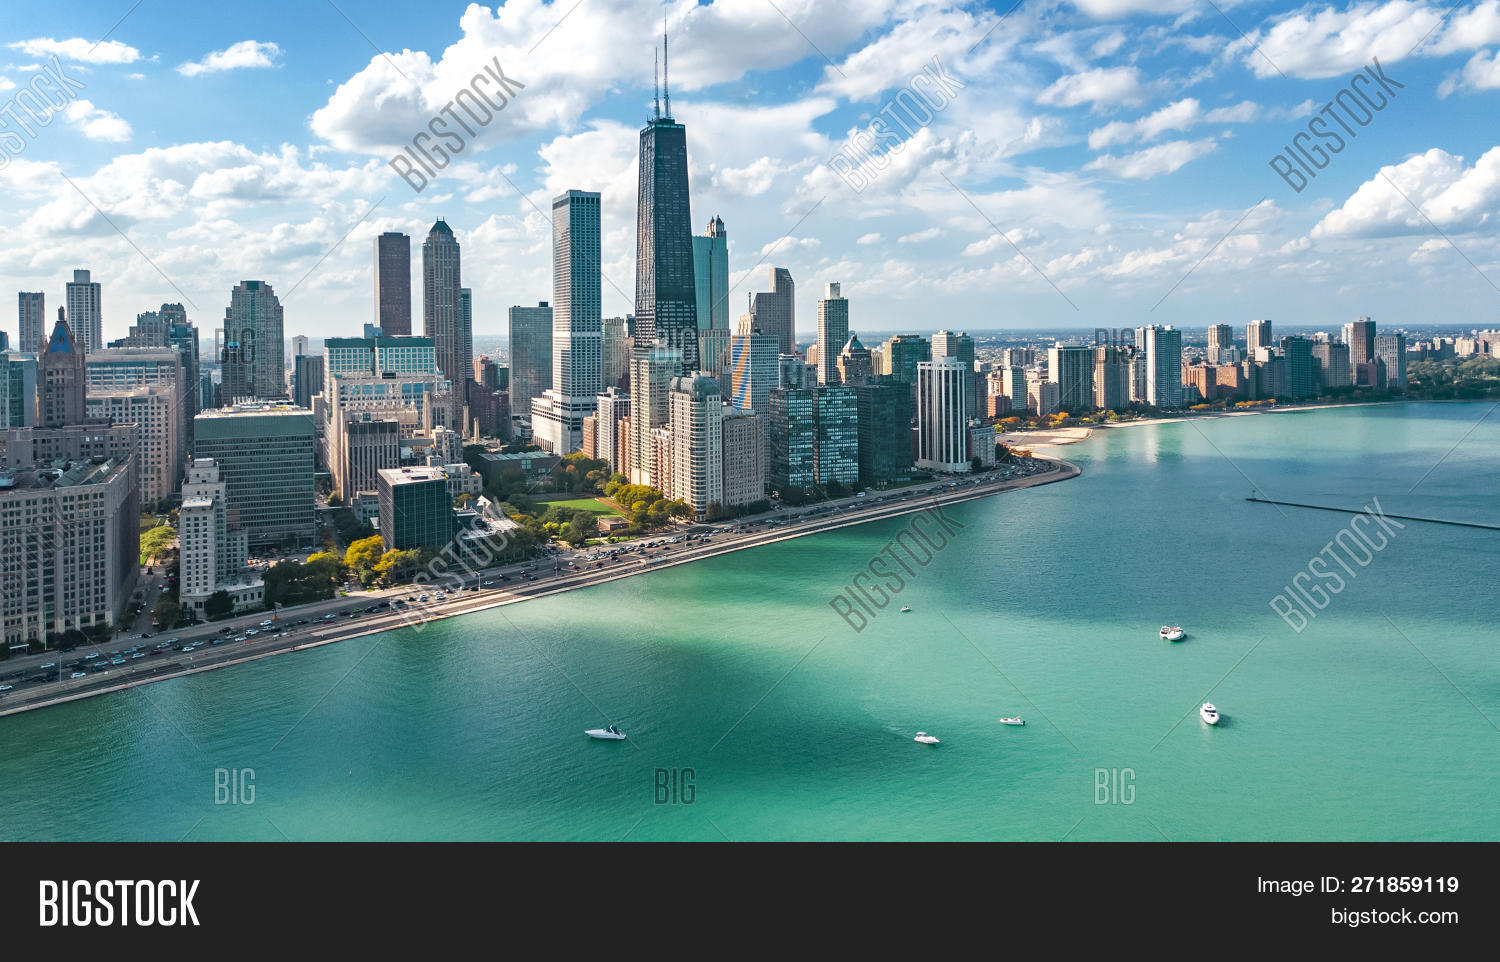 aerial,america,apartment,architecture,autumn,blue,building,chicago,city,cityscape,clouds,contemporary,day,district,downtown,green,high,hotel,illinois,lake,lakefront,landmark,michigan,midwest,modern,nature,office,park,sky,skyline,skyscraper,steel,structure,sunny,tall,tower,travel,trees,united,urban,usa,view,water